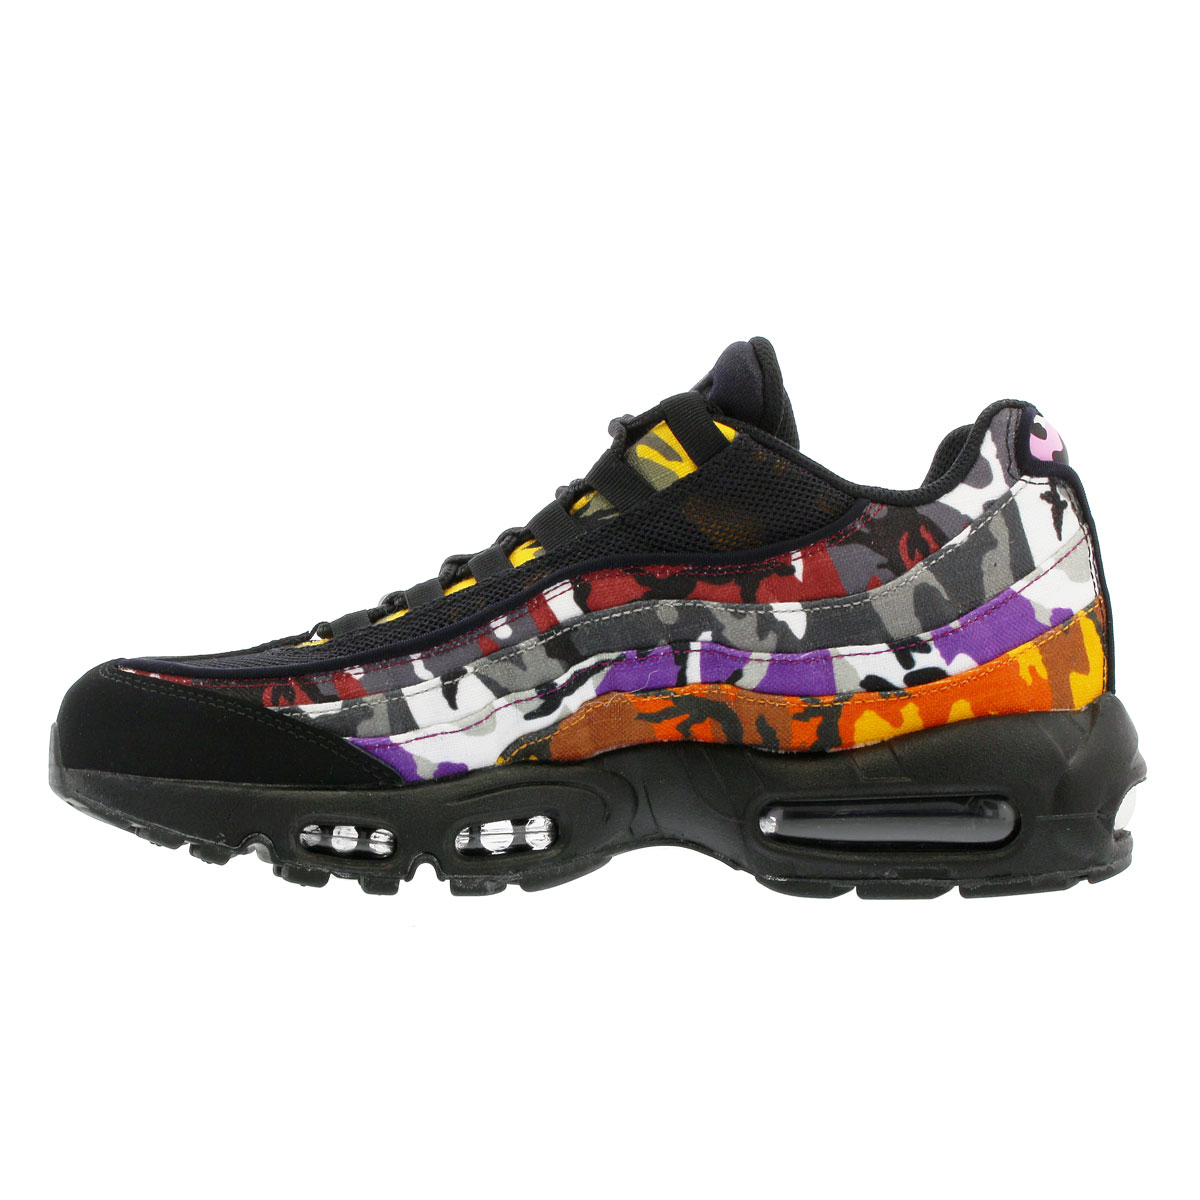 check out de087 7f8c7 NIKE AIR MAX 95 ERDL PARTY Kie Ney AMAX 95 BLACK/MULTI CAMO ar4473-001